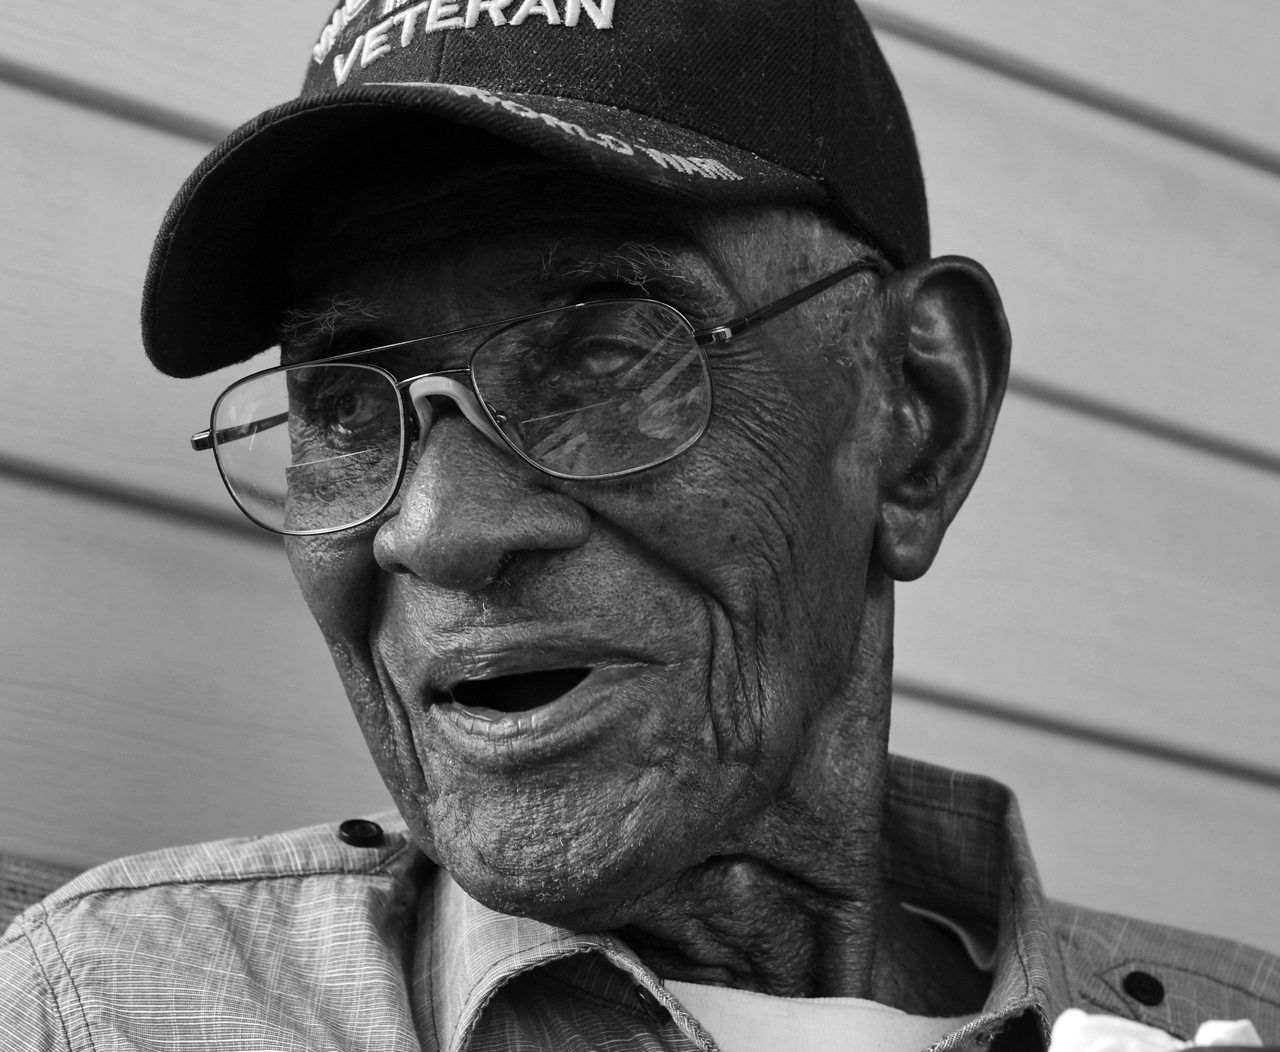 Richard Overton, the nation's oldest living World War II veteran, celebrated his 112th birthday on Friday, May 11, 2018, at his East Austin, Texas, home where he has lived since 1945.